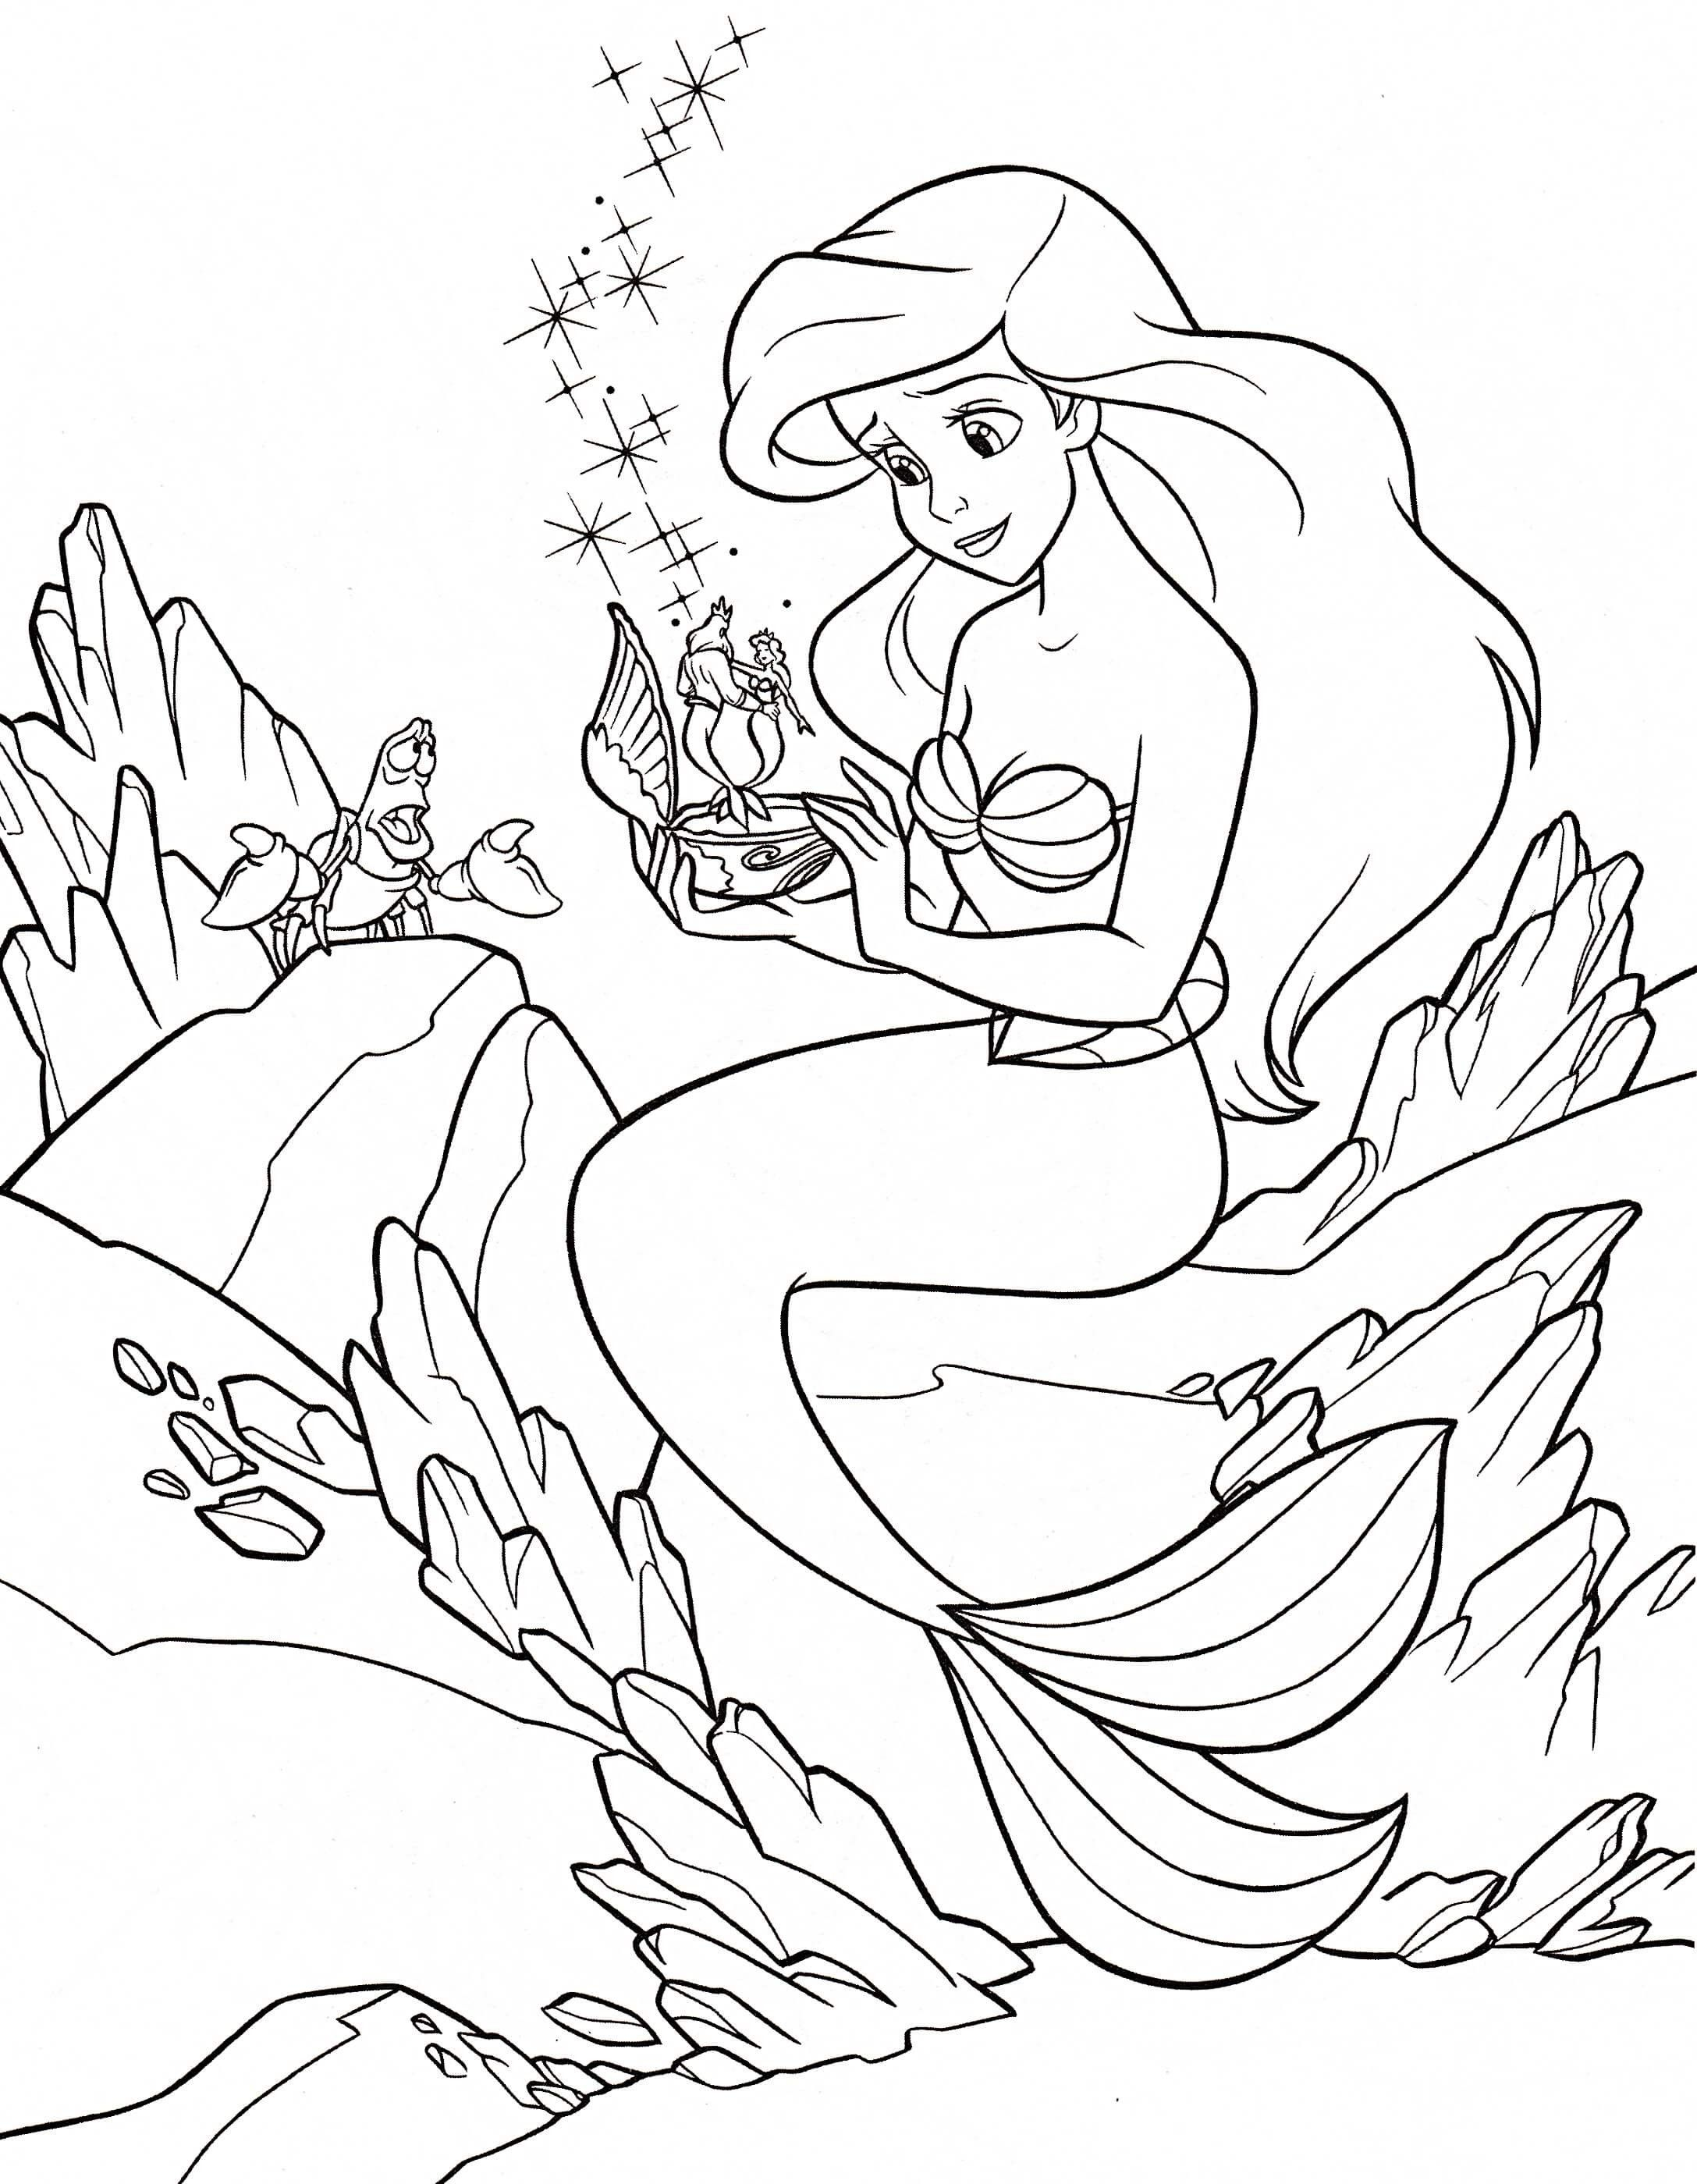 Disney Princess Coloring Pages Free Pdf From the